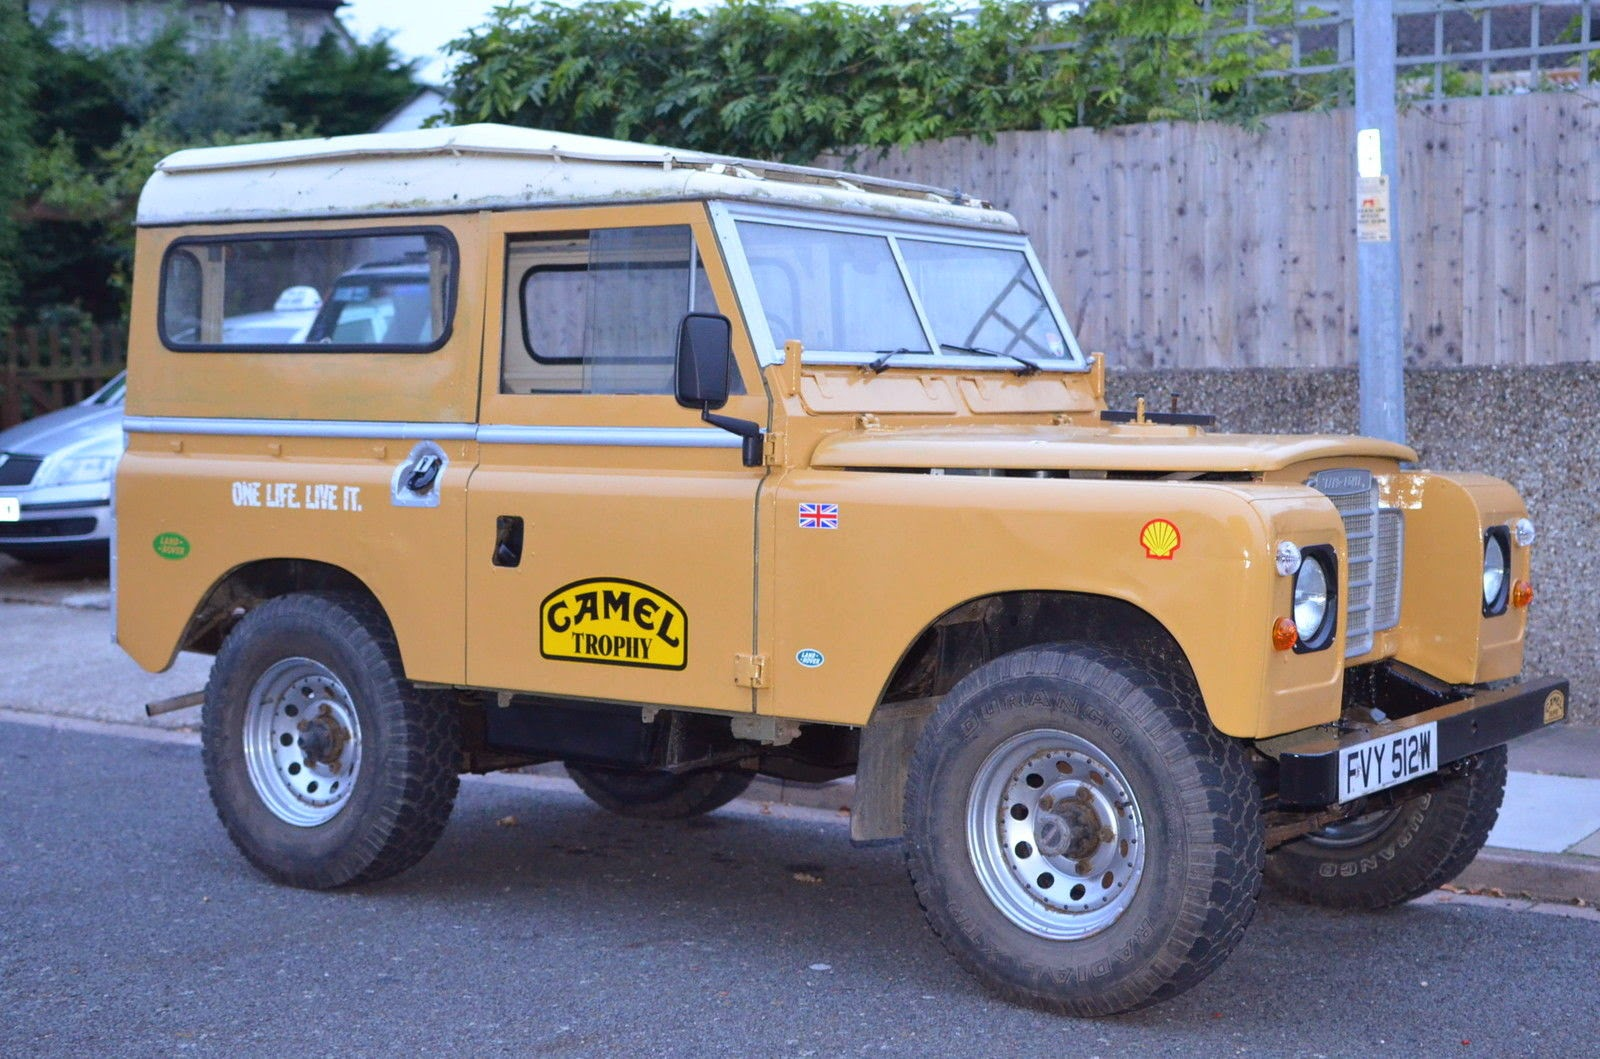 1981 Land Rover Series Iii 88 Swb Iconic Camel Trophy 4x4 Cars